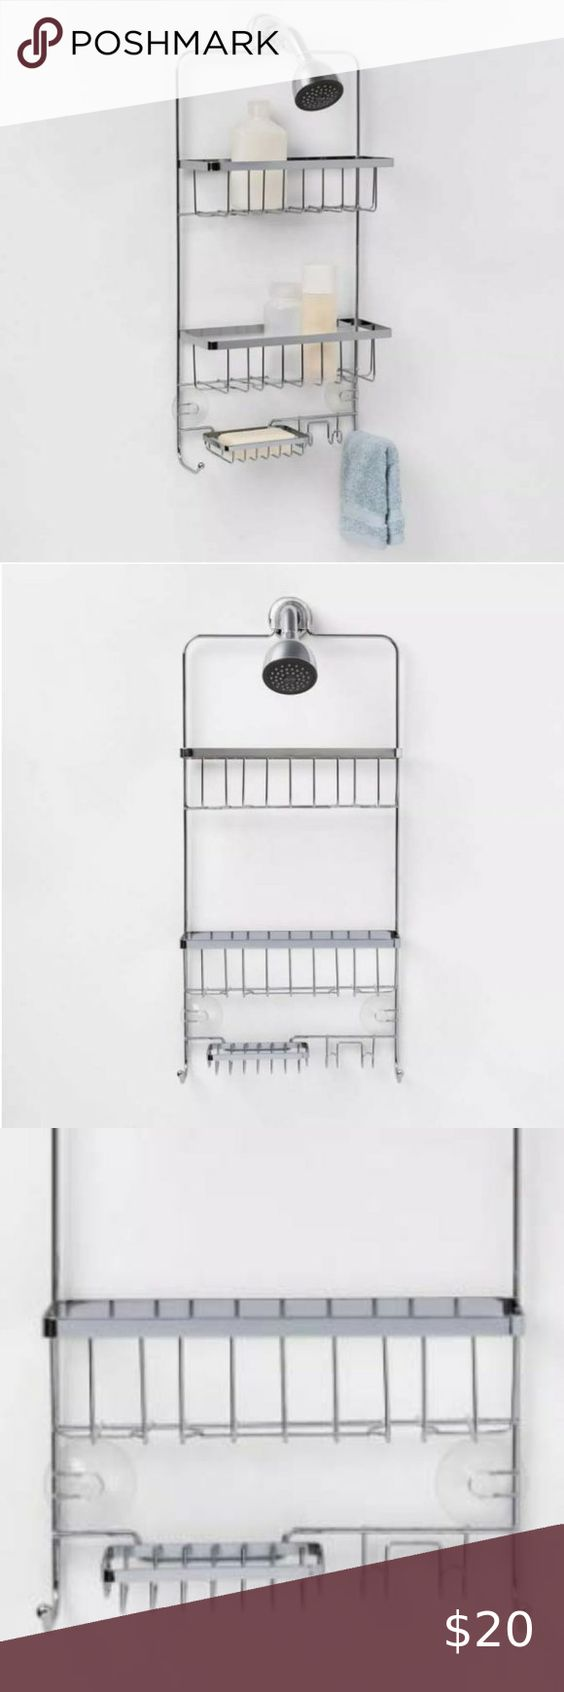 New Bathroom Shower Caddy Made By Design Boutique In 2020 With Images Hanging Shower Caddy Shower Caddy Bathroom Shower